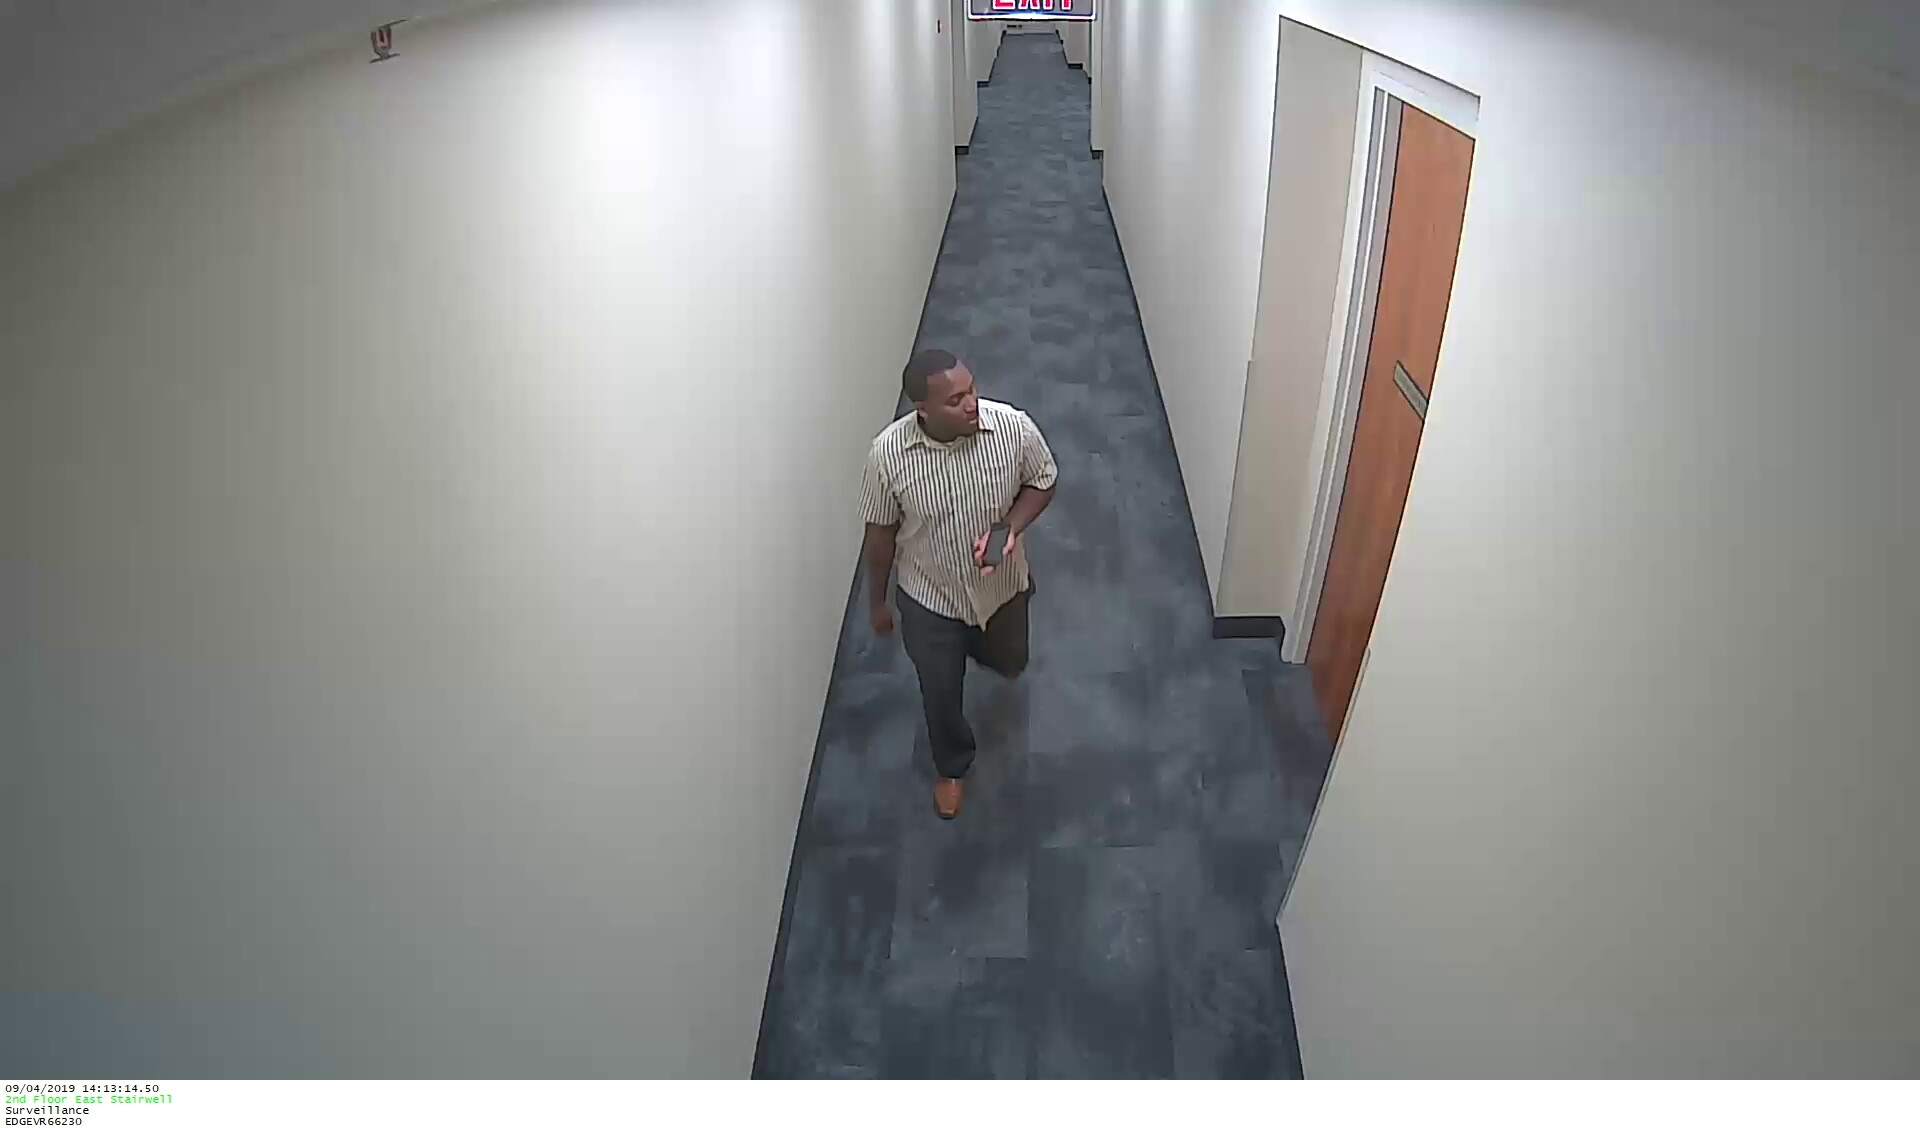 Photos: Police searching for suspect after credit cards stolen from woman's Newport News office